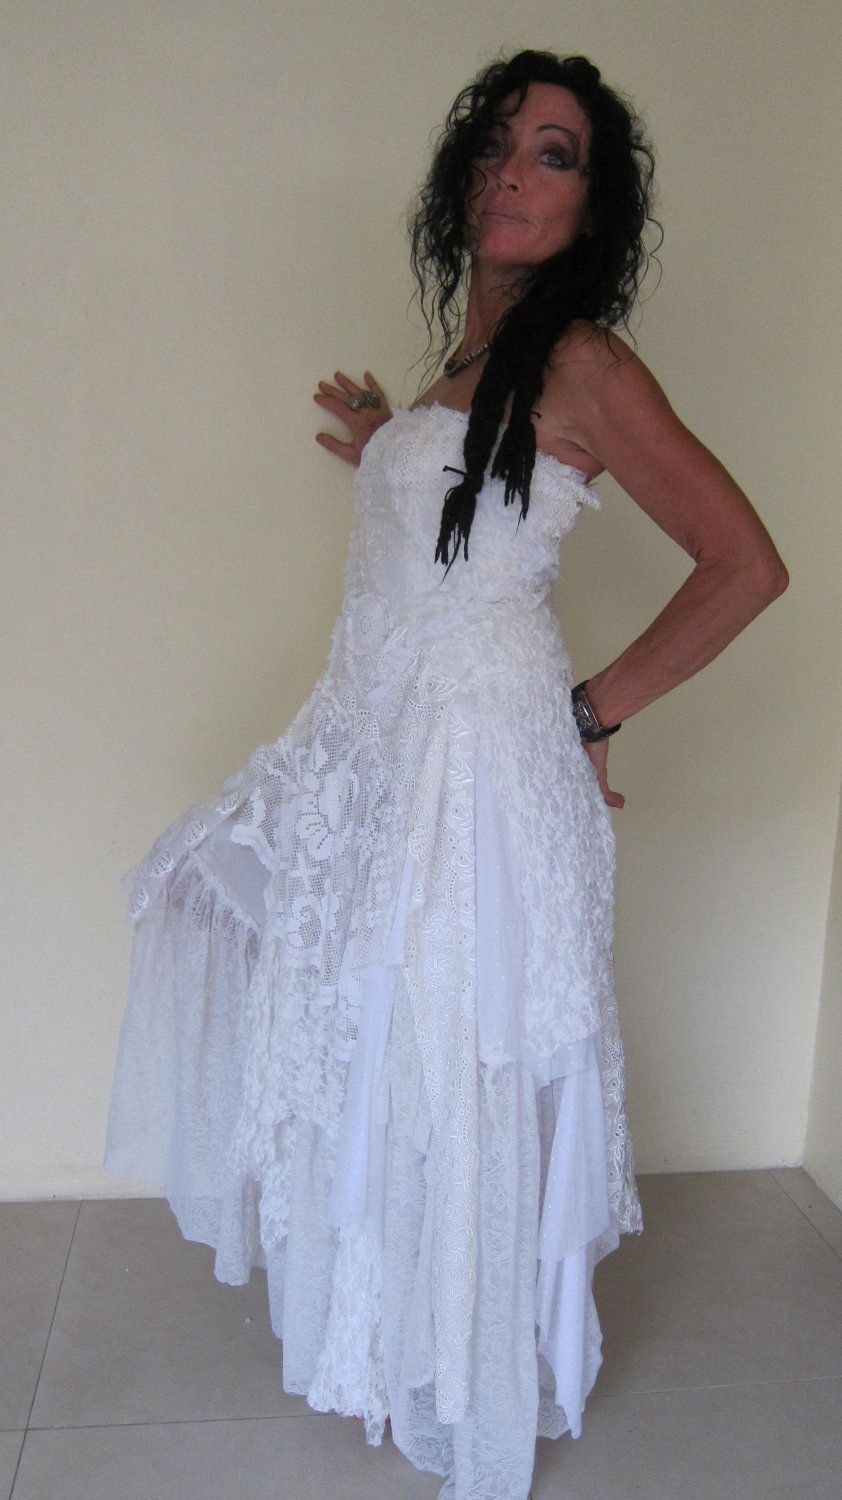 Vintage inspired shabby bohemian gypsy wedding dress ...small to 34 ...